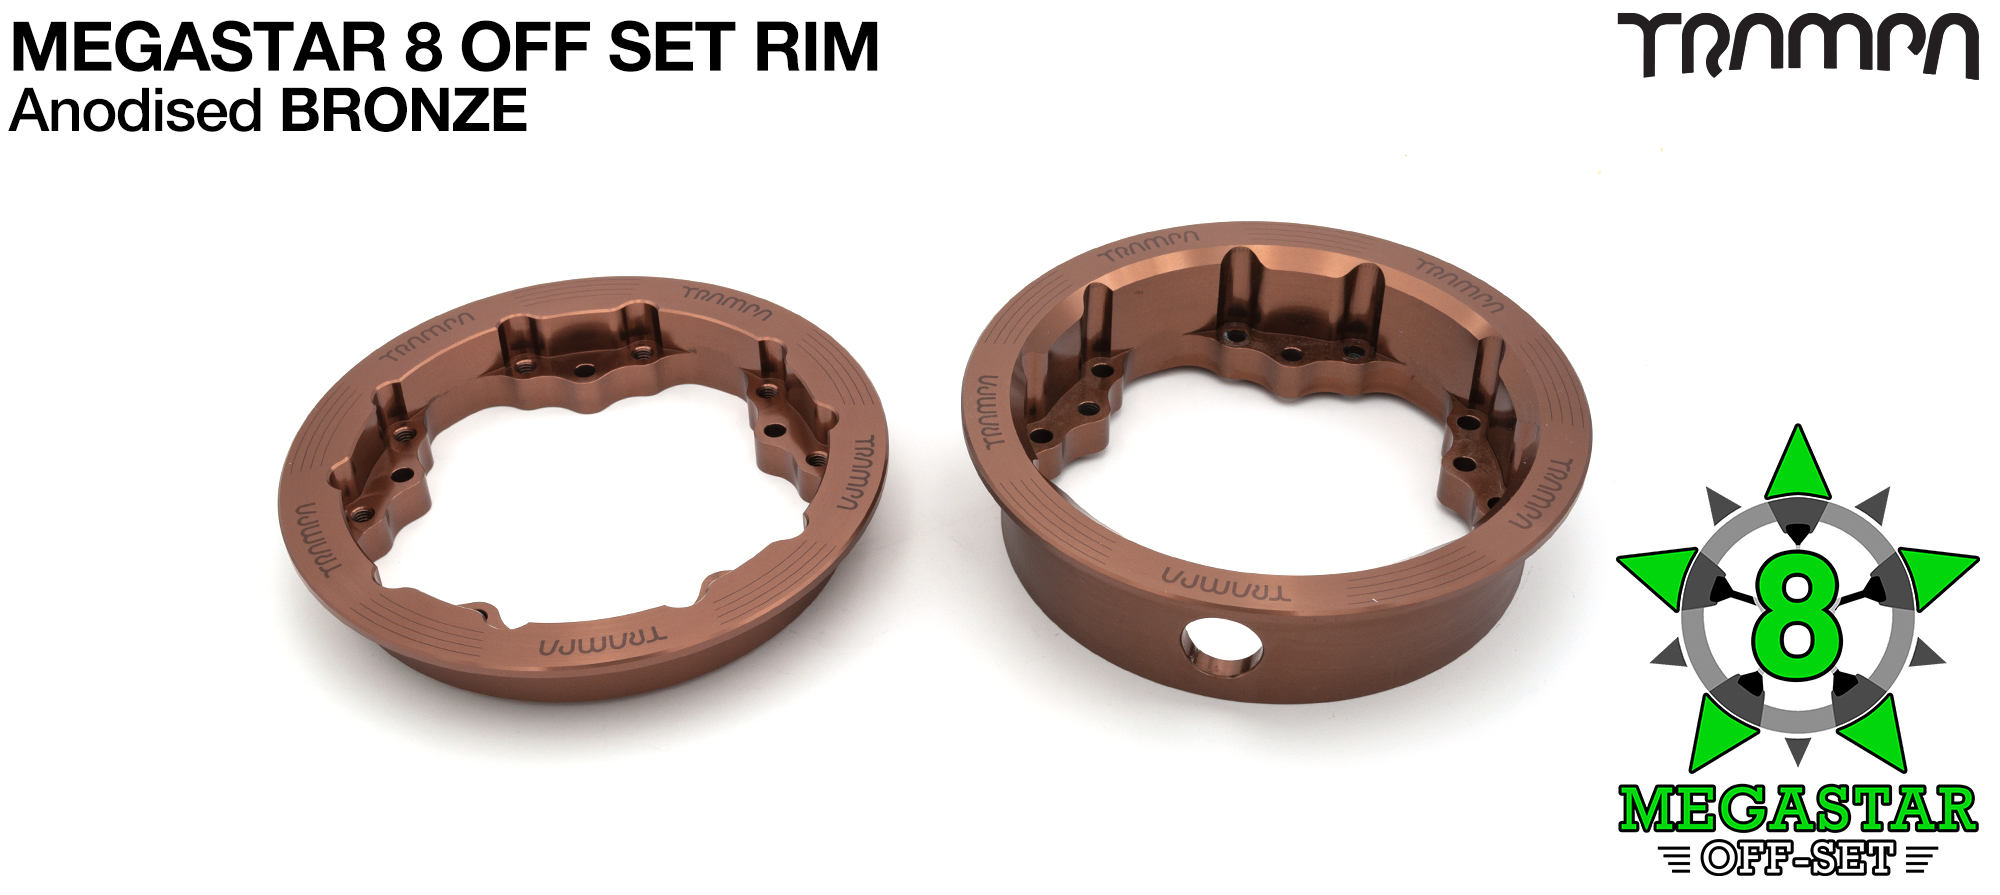 OFF-SET 8 inch MEGASTAR Rims - BRONZE